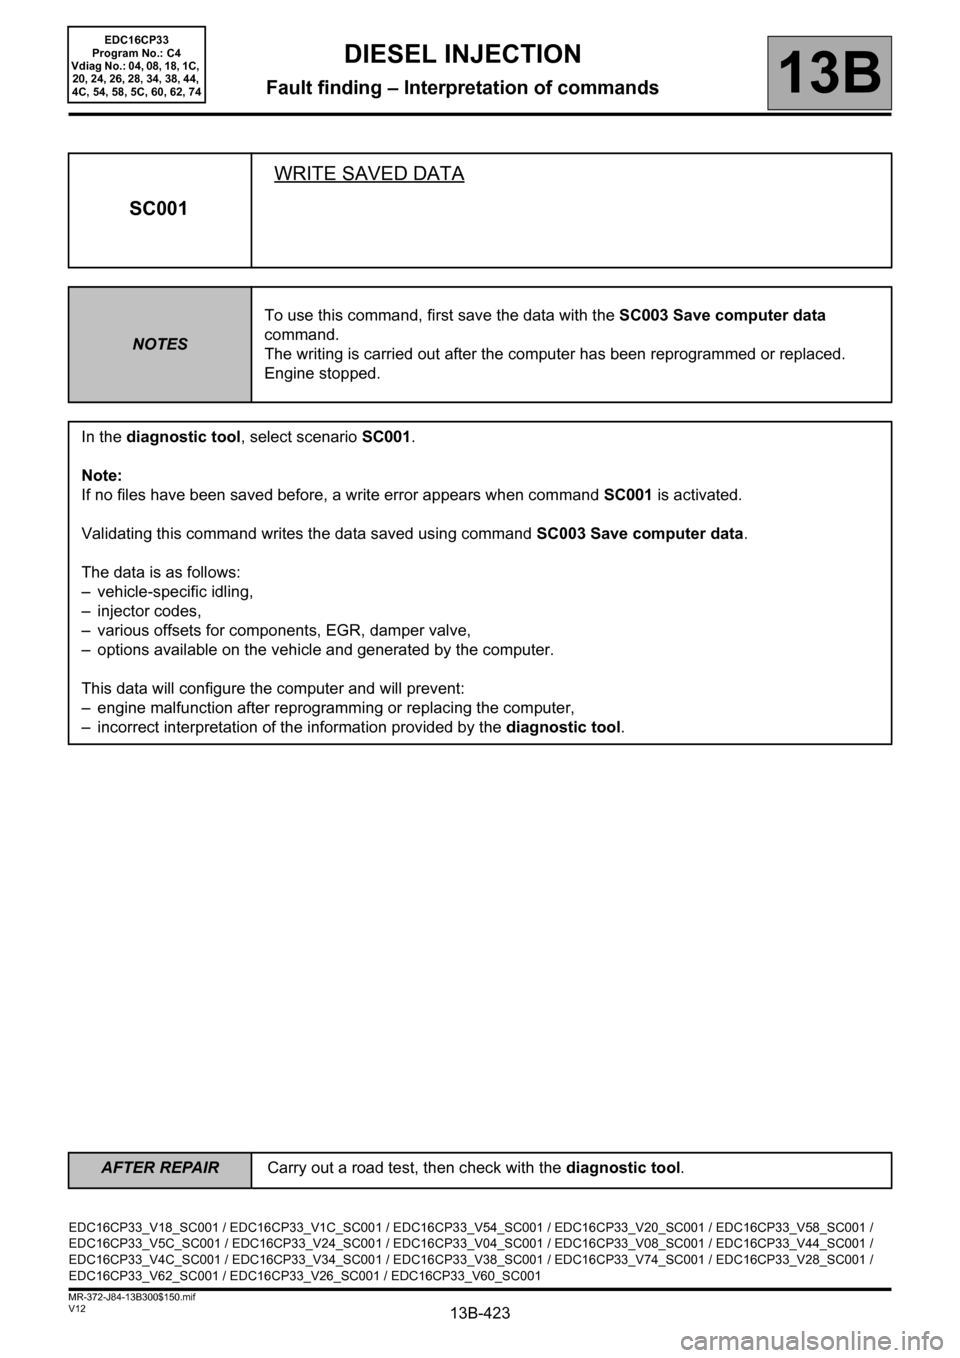 RENAULT SCENIC 2012 J95 / 3.G Engine And Peripherals EDC16CP33 Workshop Manual, Page 423